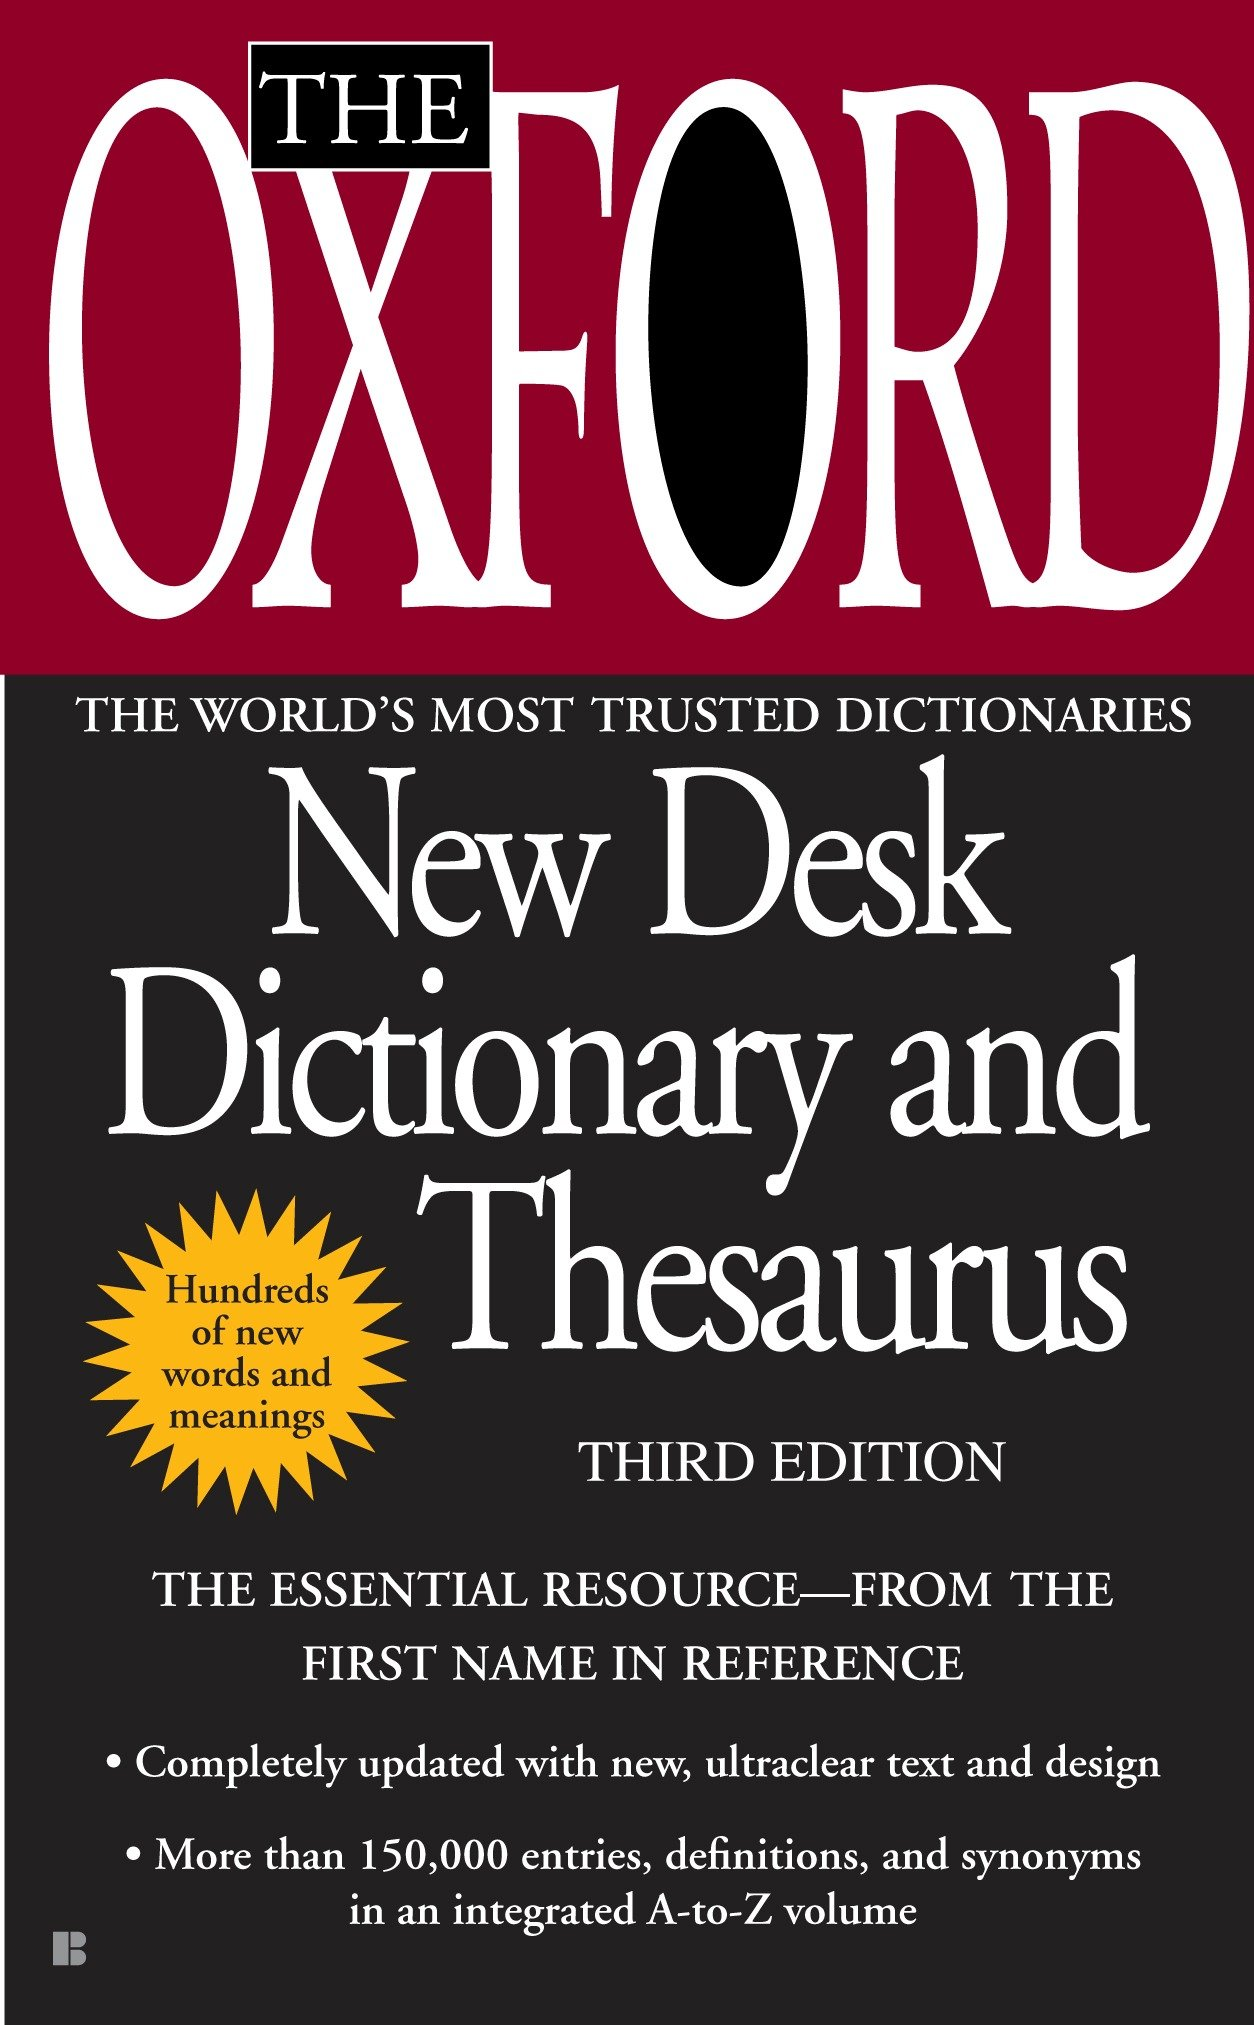 The Oxford New Desk Dictionary And Thesaurus Third